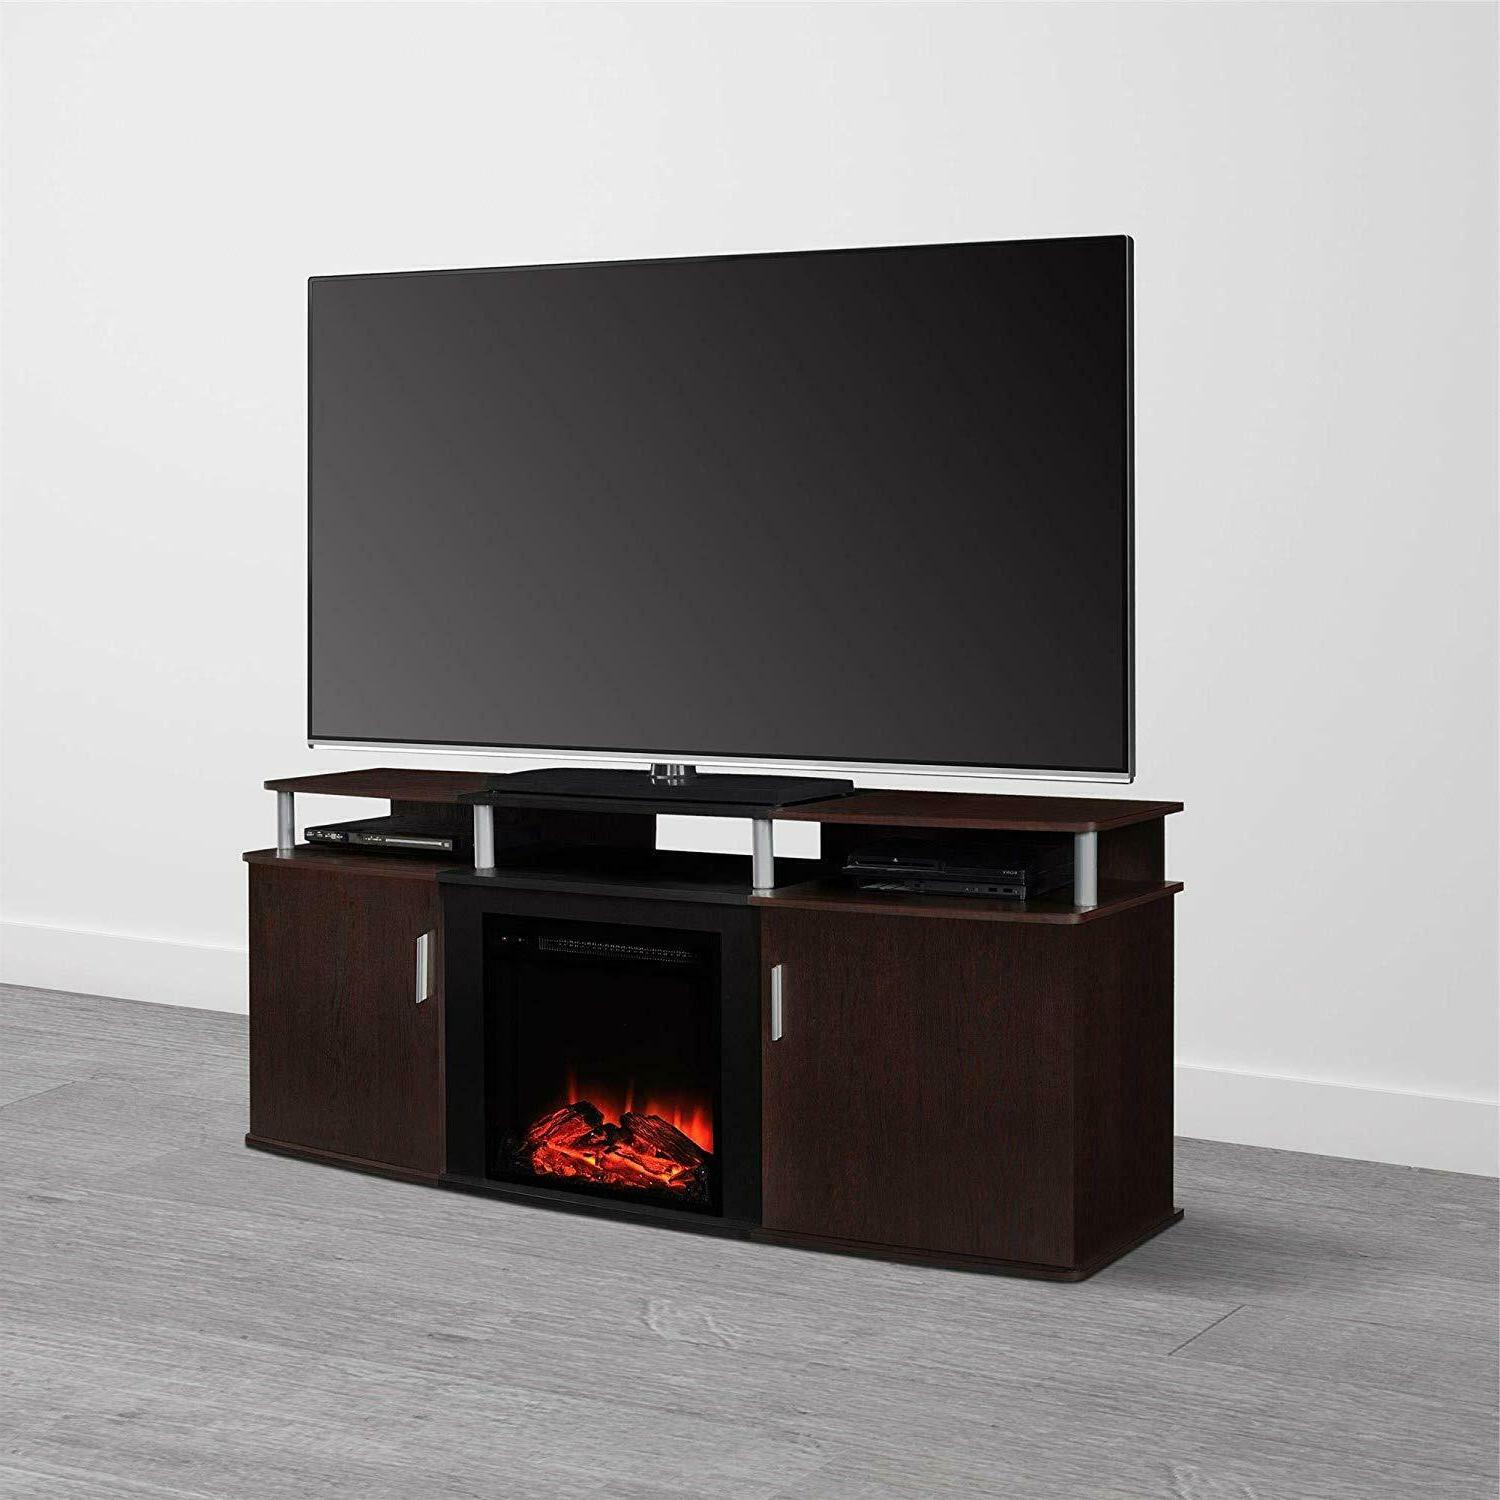 Ameriwood Fireplace TV Stand for TVs Cherry NEW